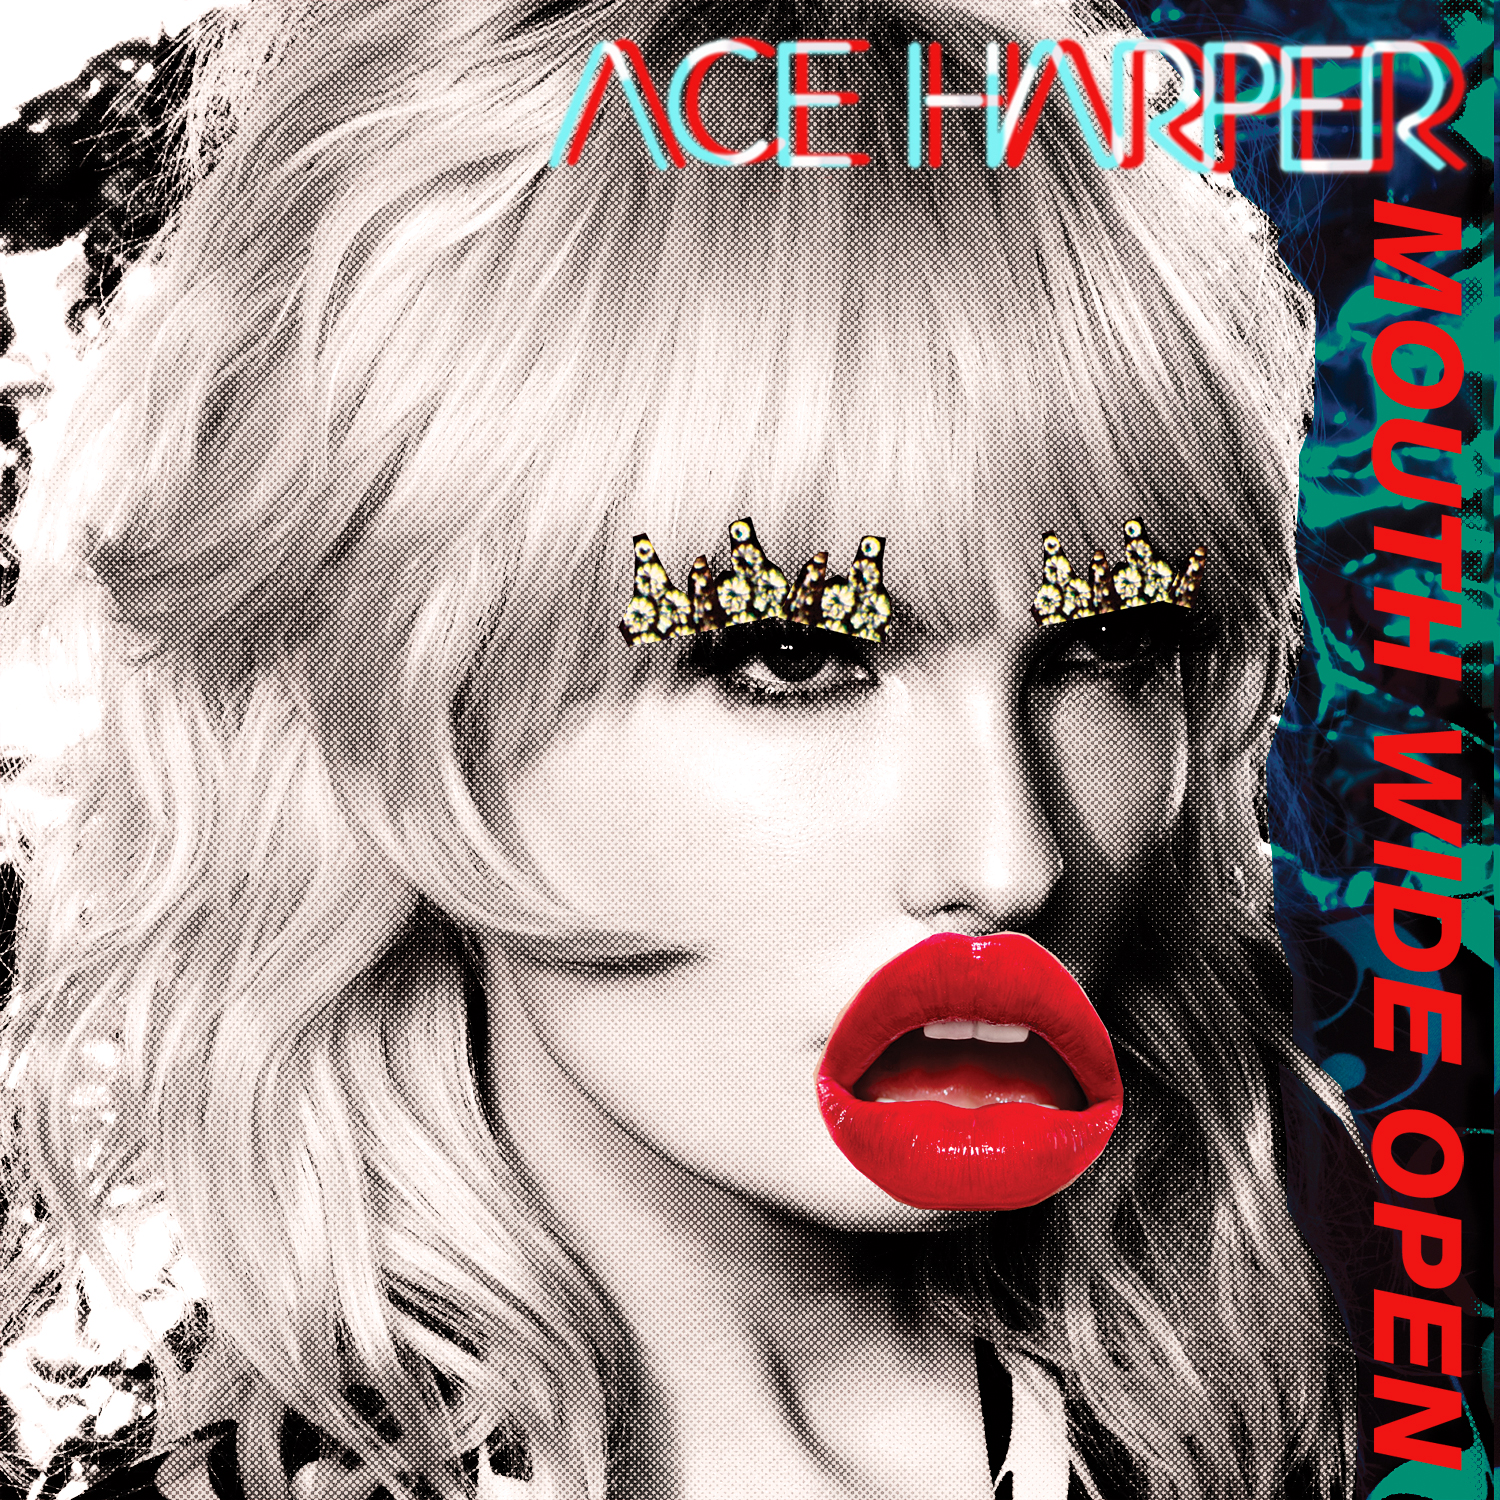 Lemonade Magazine: Ace Harper: Stylized And Hyper-Sexual